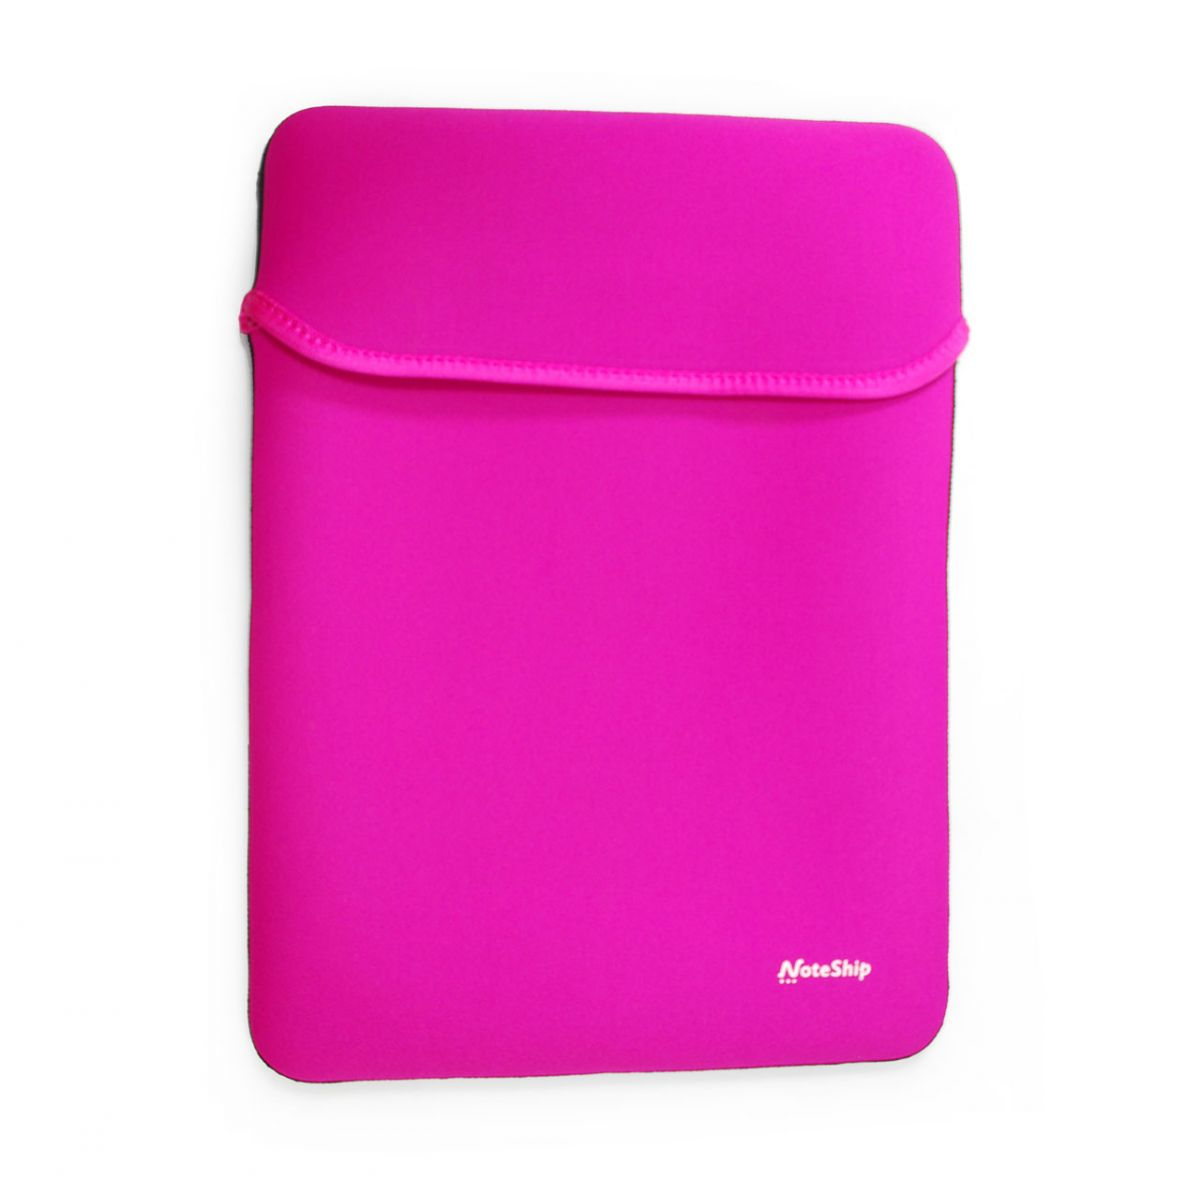 Case para Notebook 15.6 Glove Violeta 2625 - Leadership